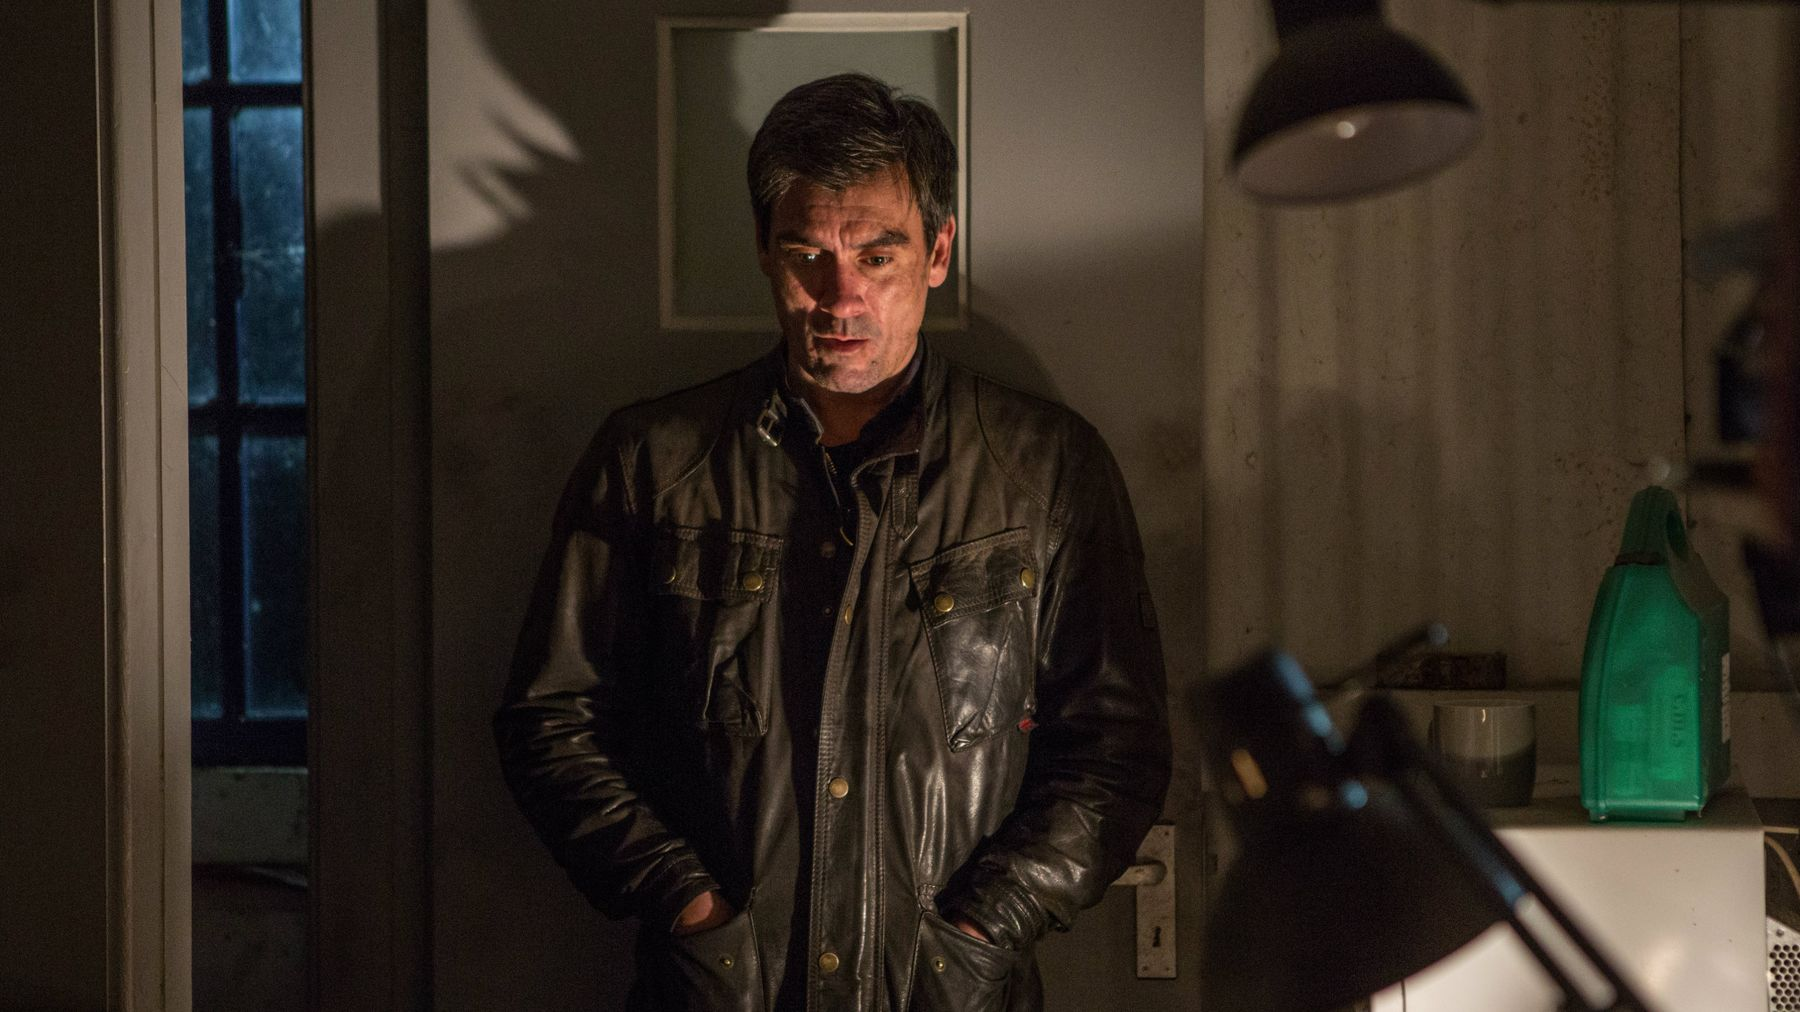 Emmerdale spoilers: Cain Dingle comes clean to Debbie about killing